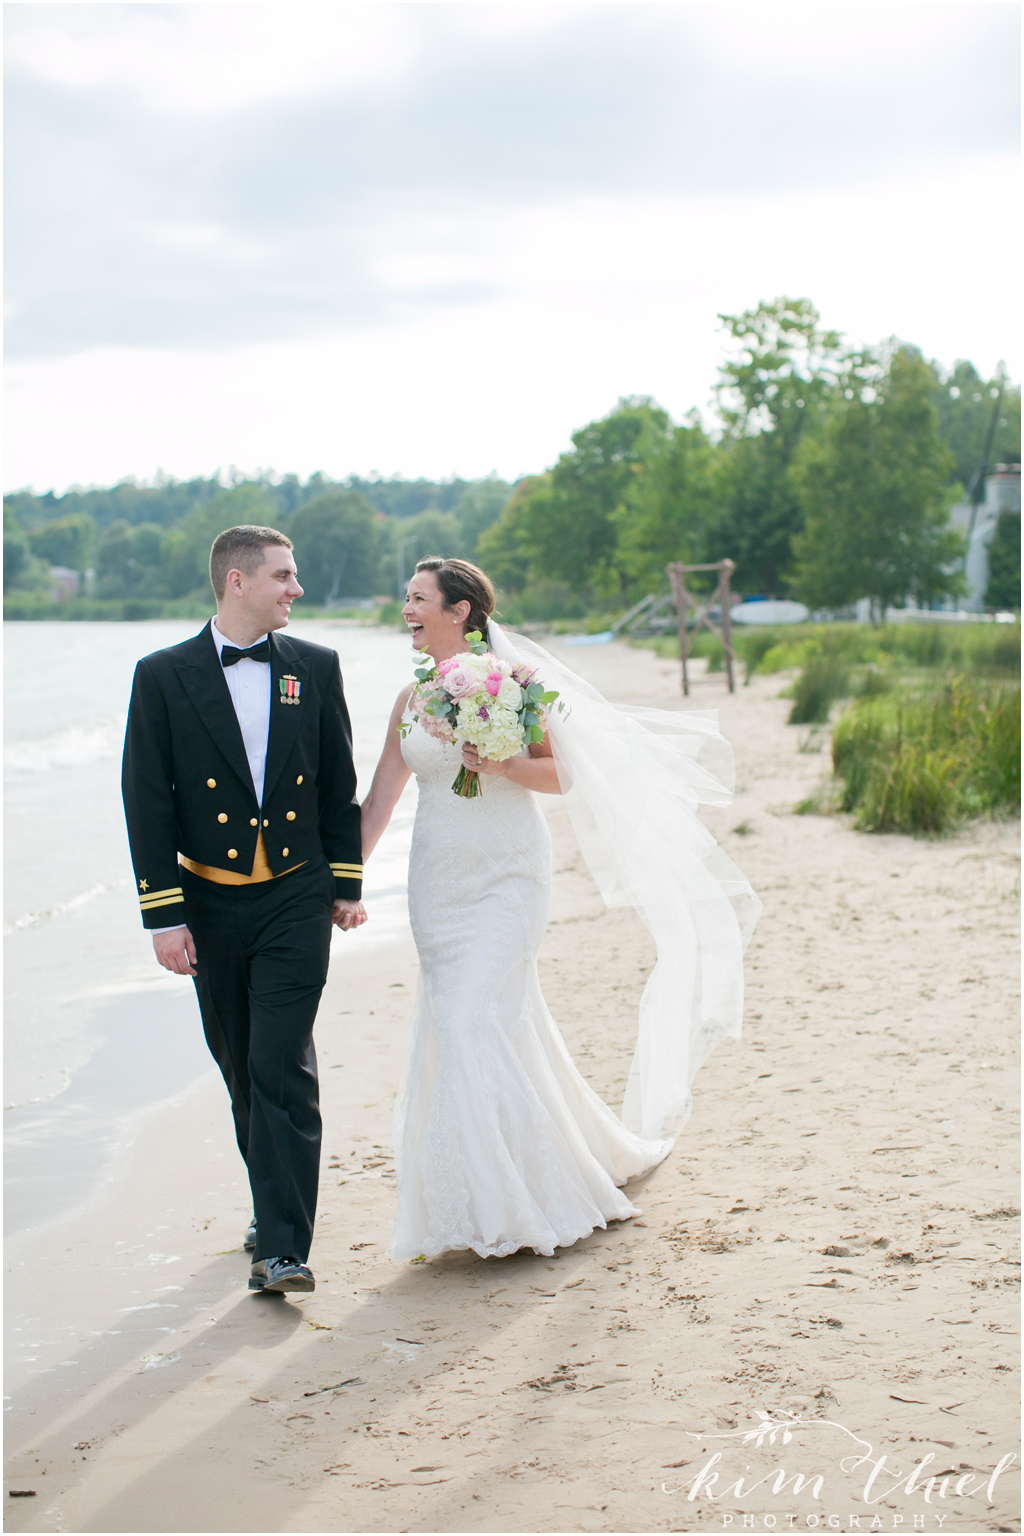 Kim-Thiel-Photography-Private-Door-County-Beach-Wedding-56